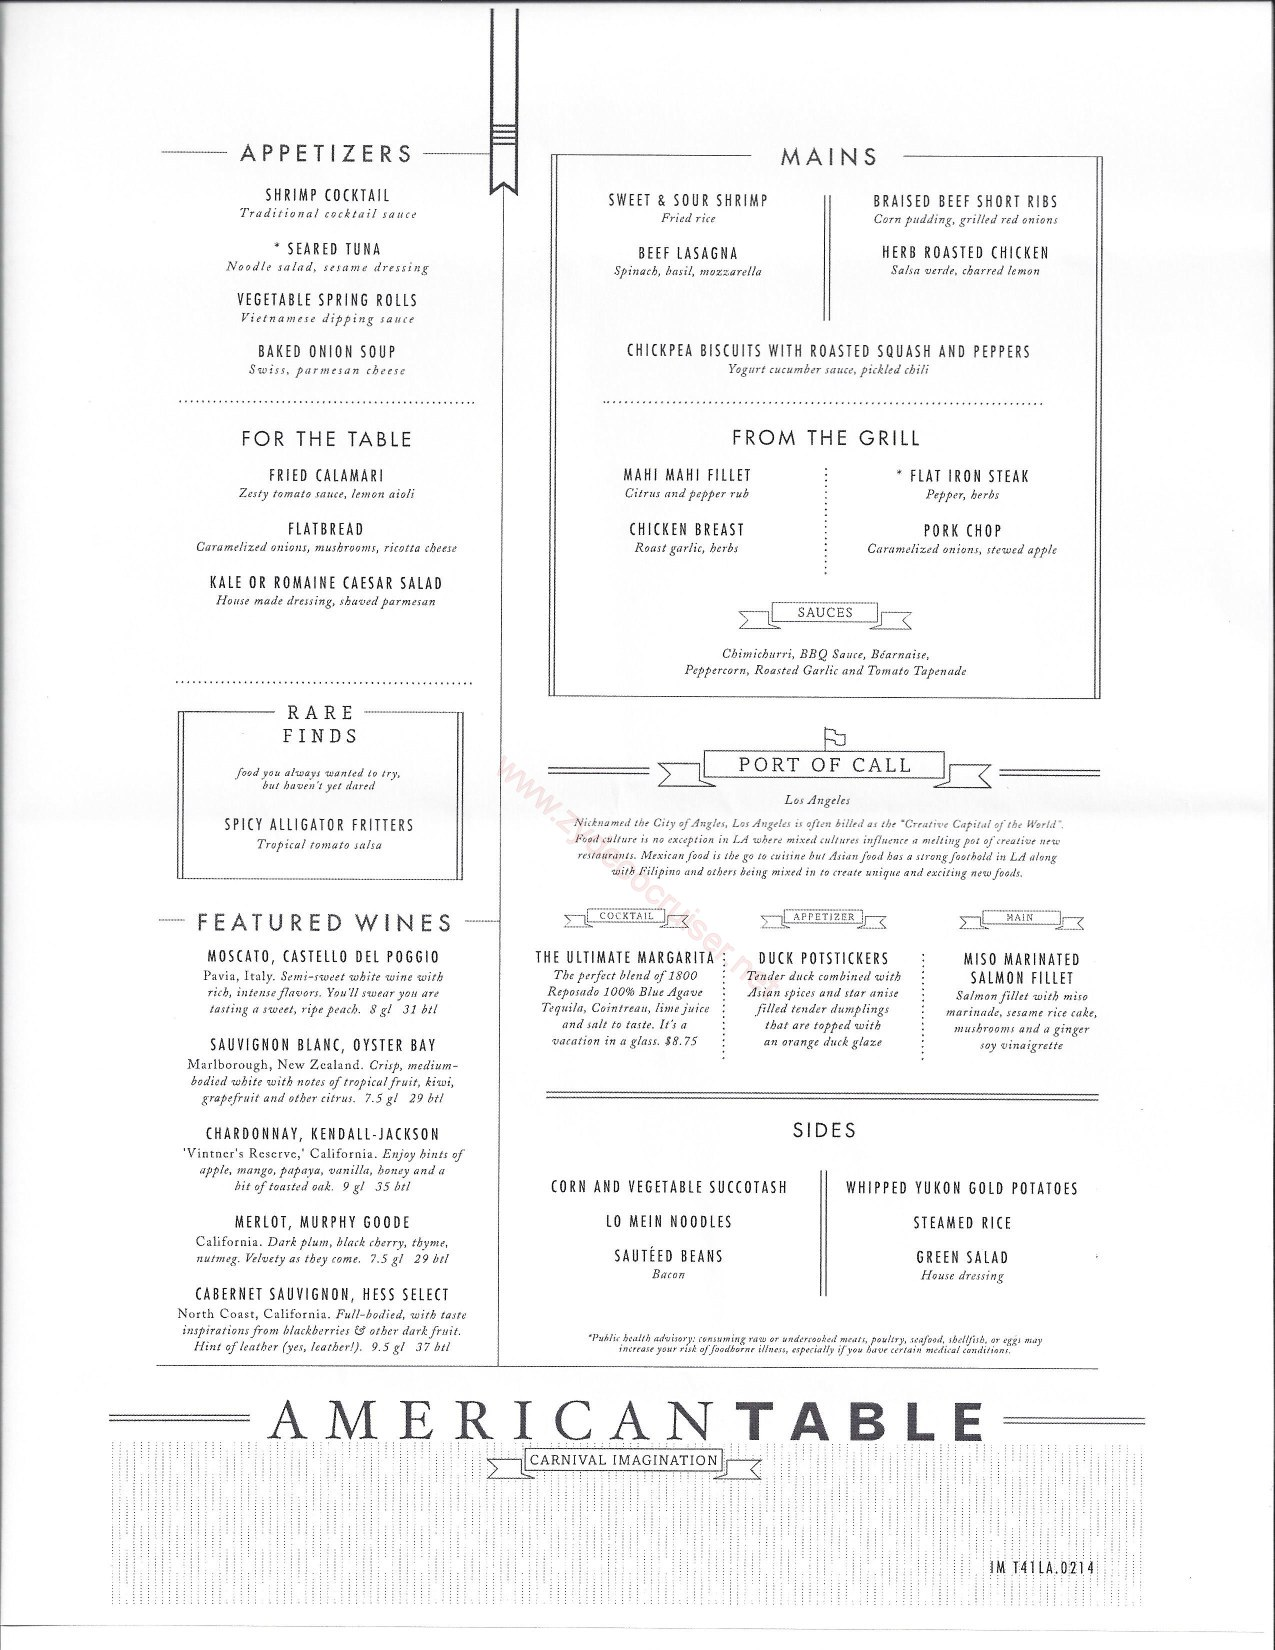 Carnival imagination american table mdr menus los angeles for Table menu restaurant